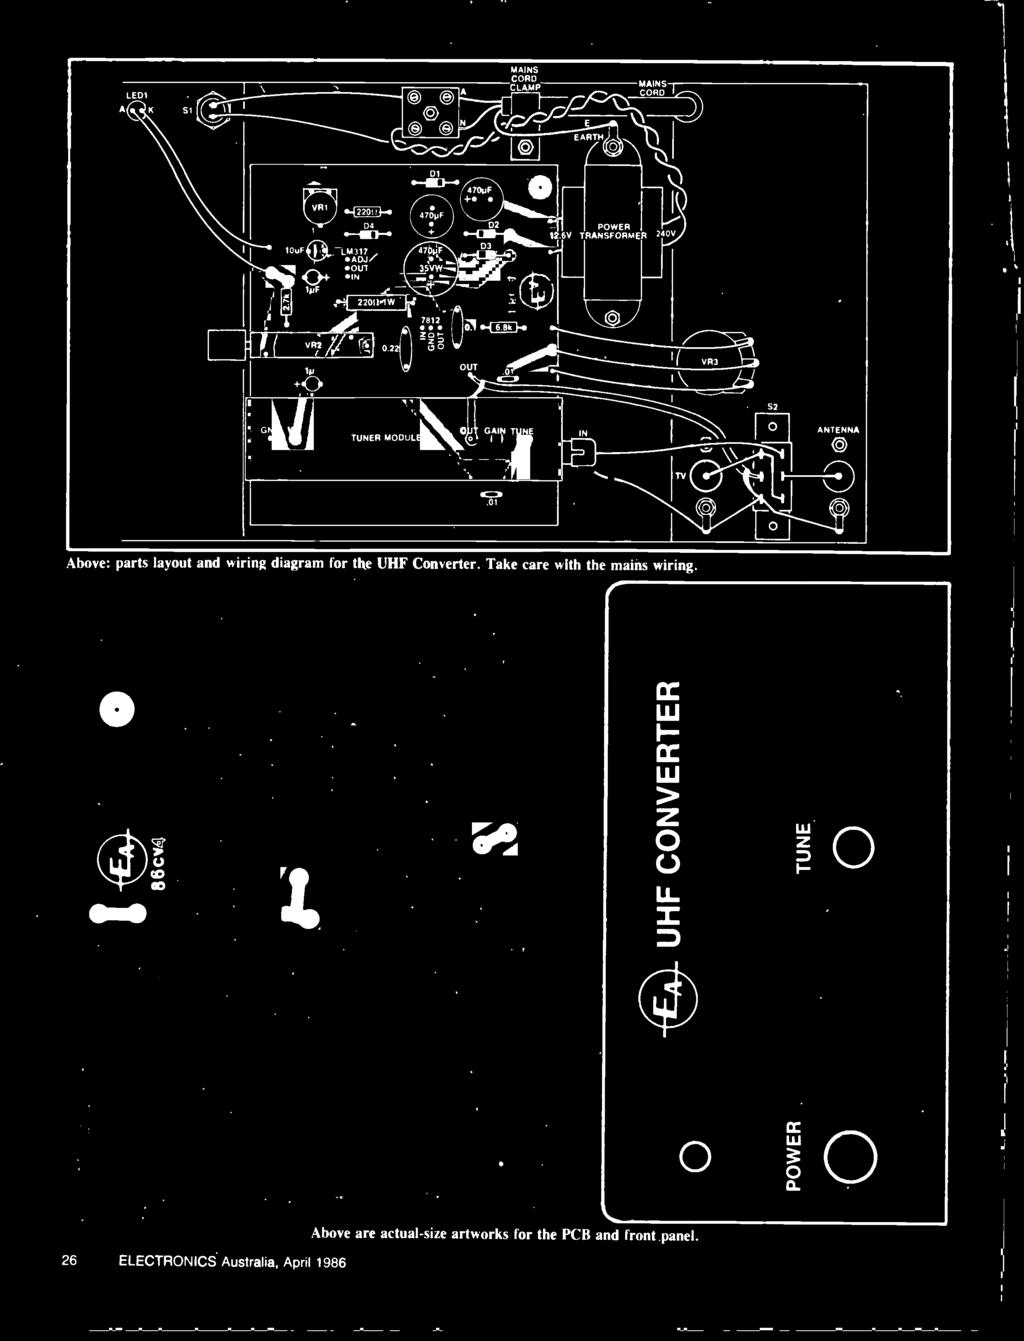 Australias Top Selling Electronics Magazine April 1986 Aust Porsche 1973 1914 Fuse Box Diagram 1 Out 01 4c7 Power Transformer 240v I Vr2 52 Ono V Gain